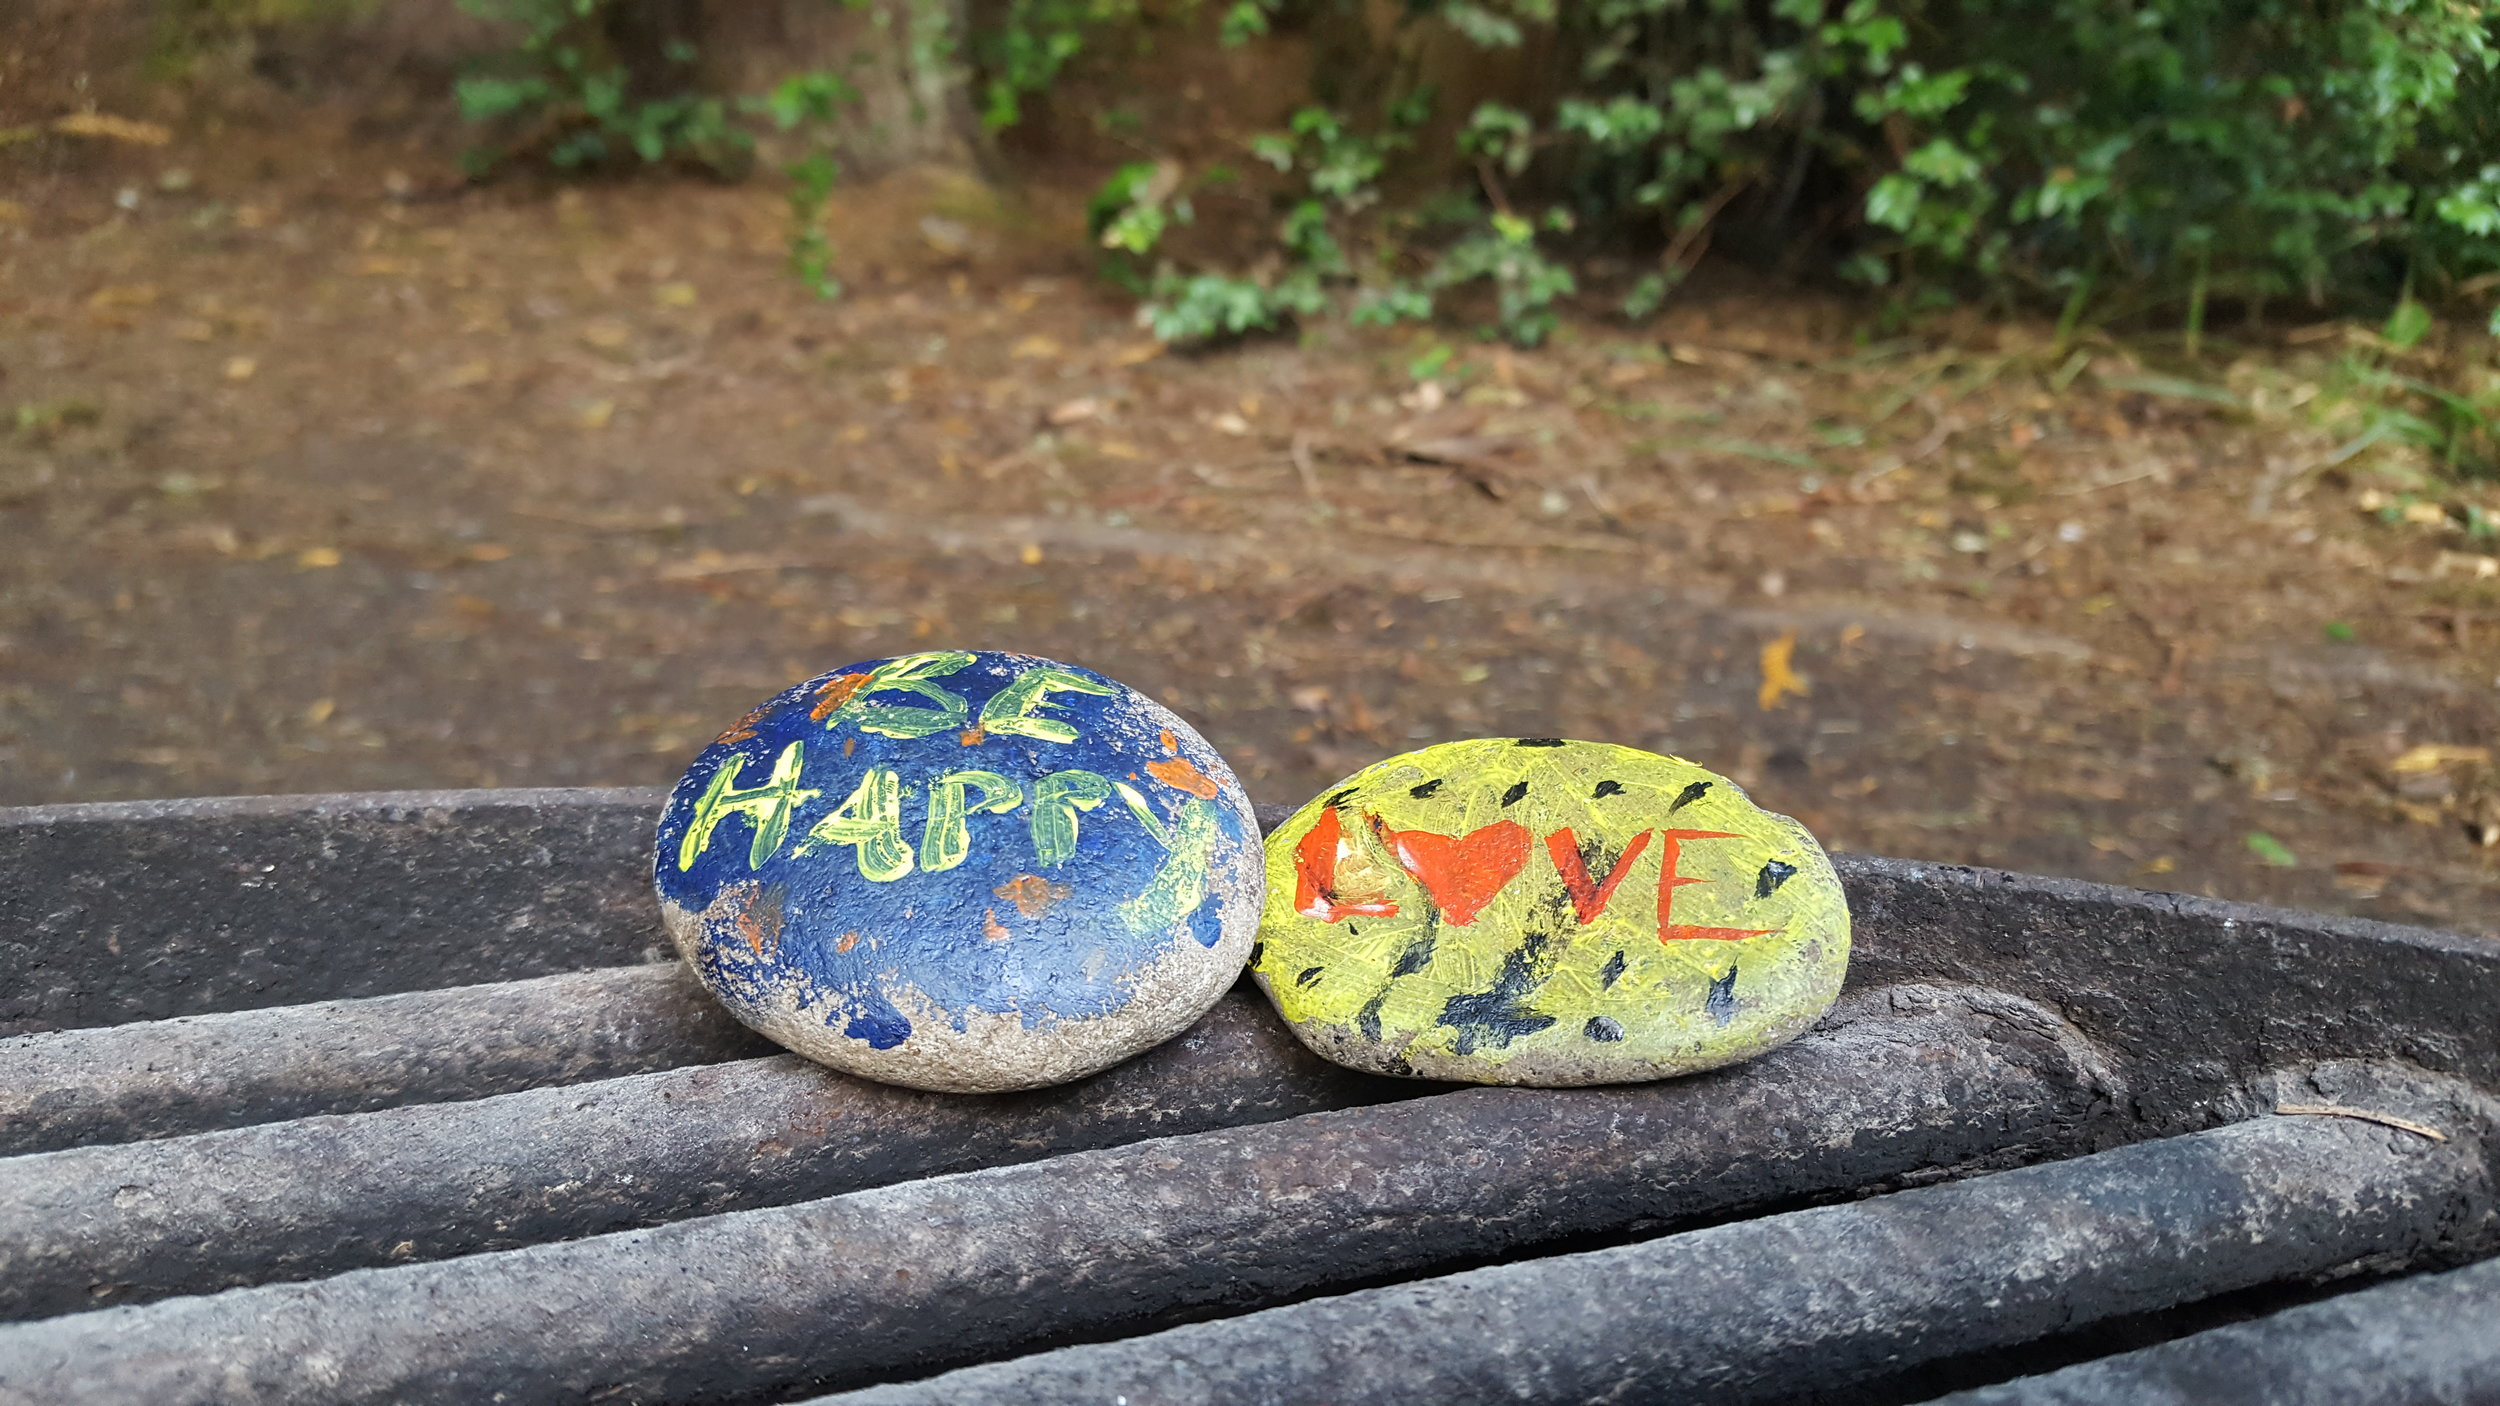 Day 89: Painted Rocks & Left Them At Our Site